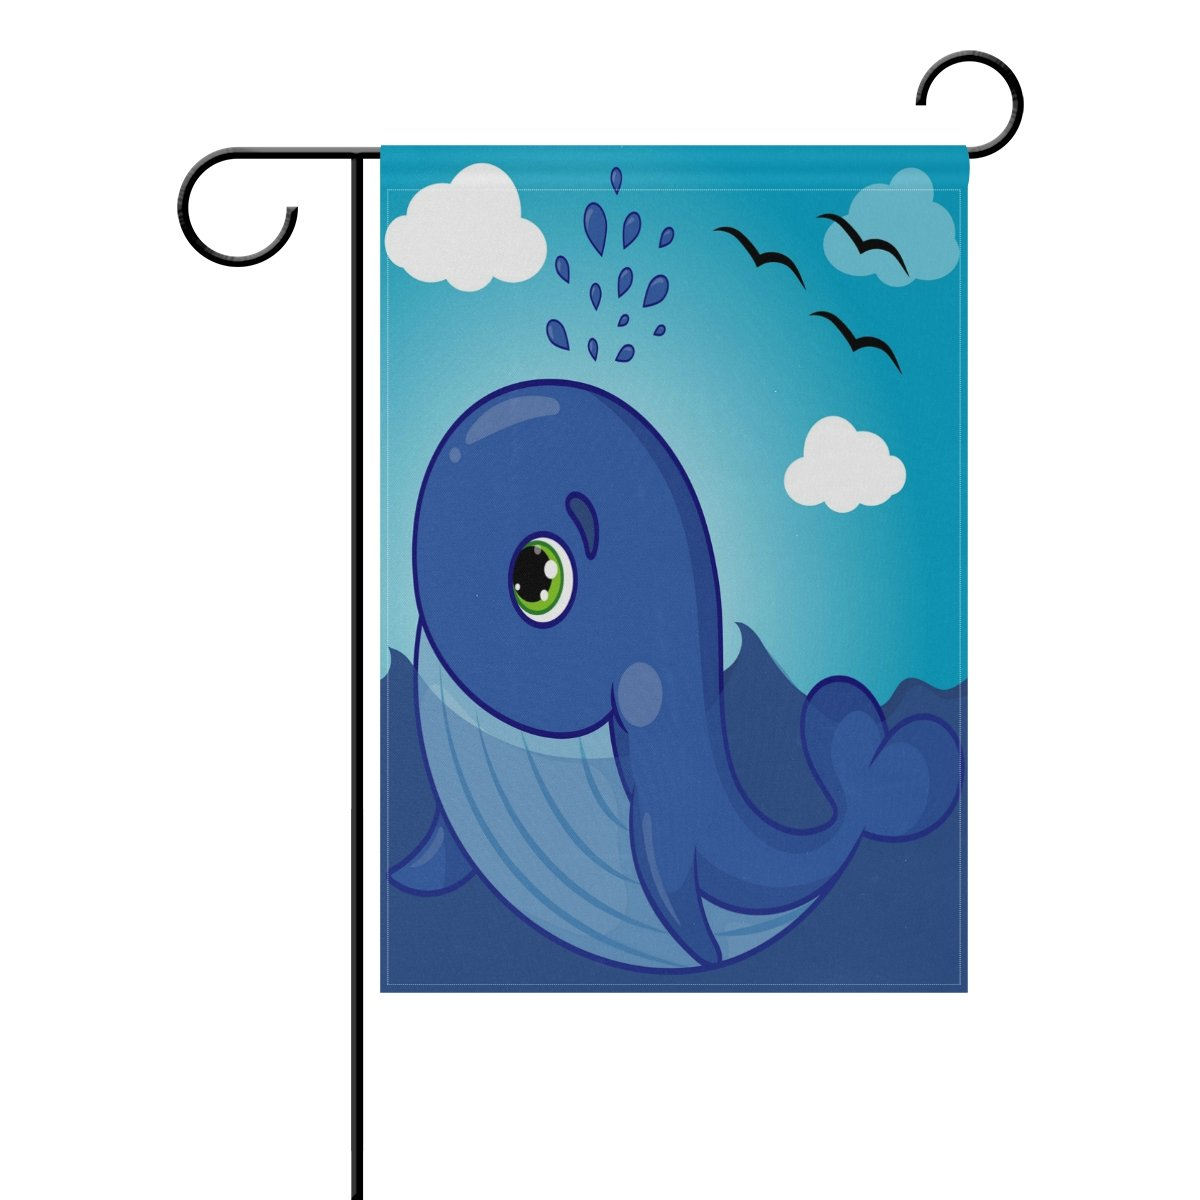 ALAZA Ocean Whale Smiling with Water Fountain Garden Flag Polyester for Home Garden Decor 28 x 40 Inch Waterproof